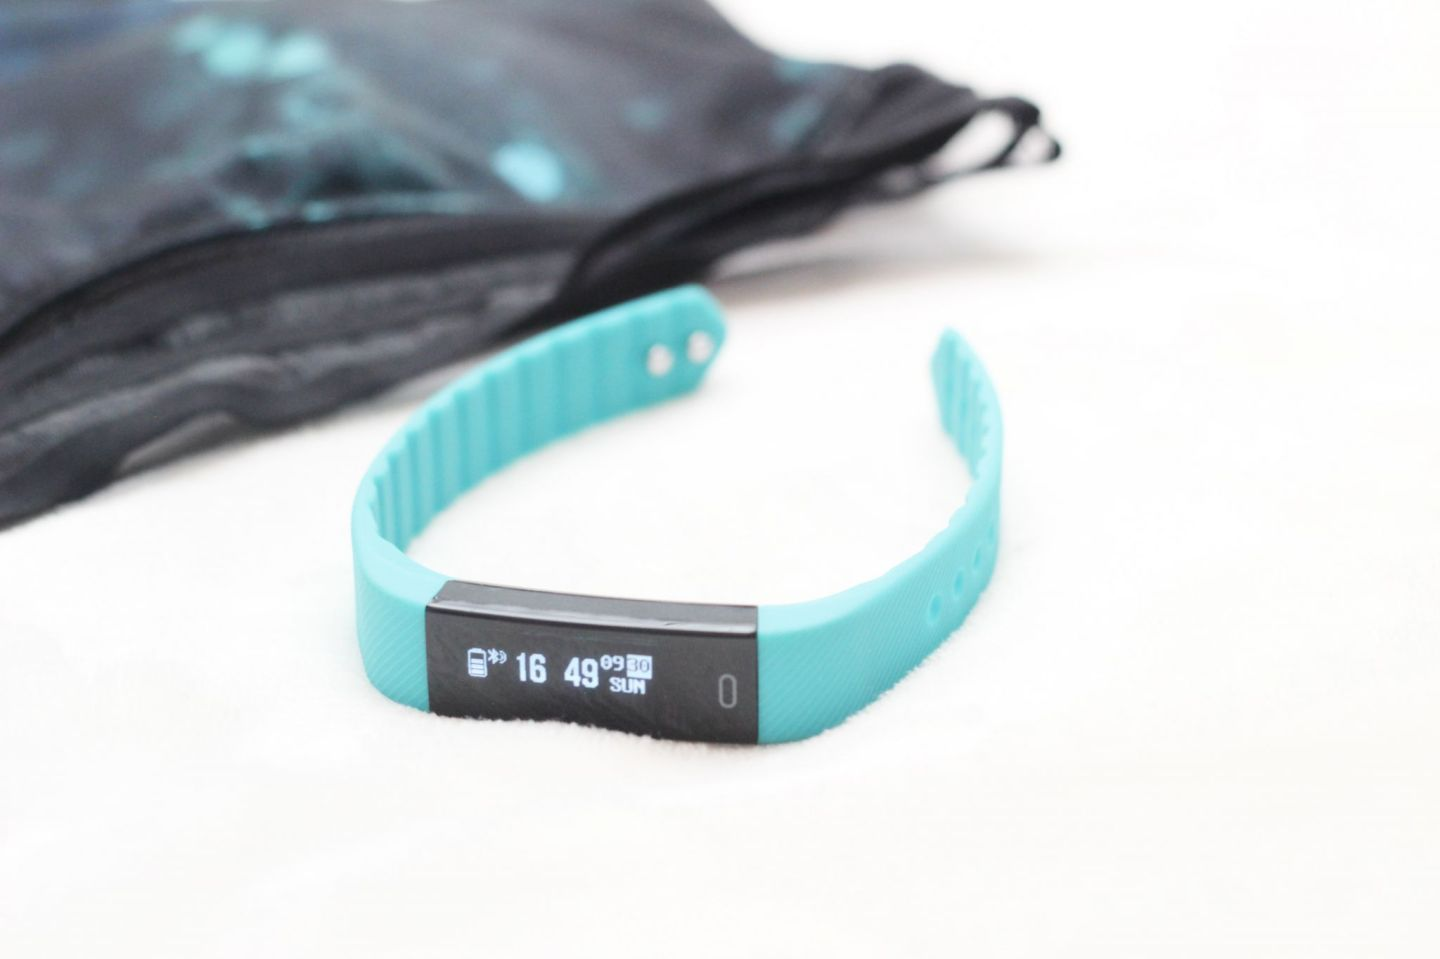 FourFit Fit Band